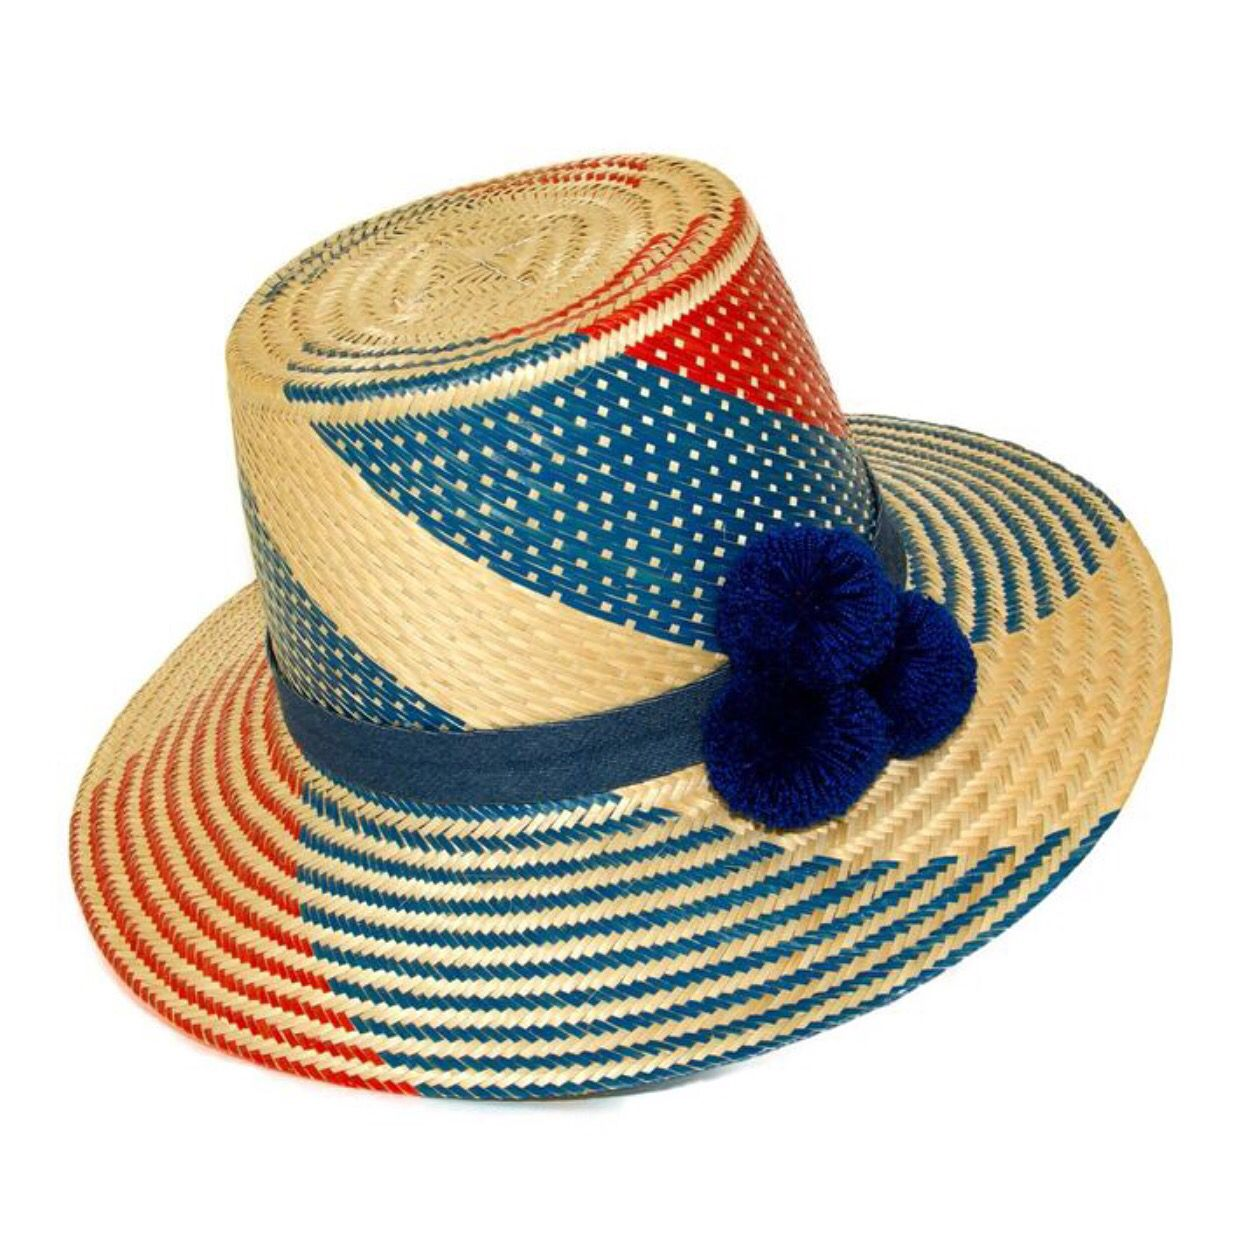 #wayuu #hat #straw #design #guajiro #look #travel www.mama-tierra.org